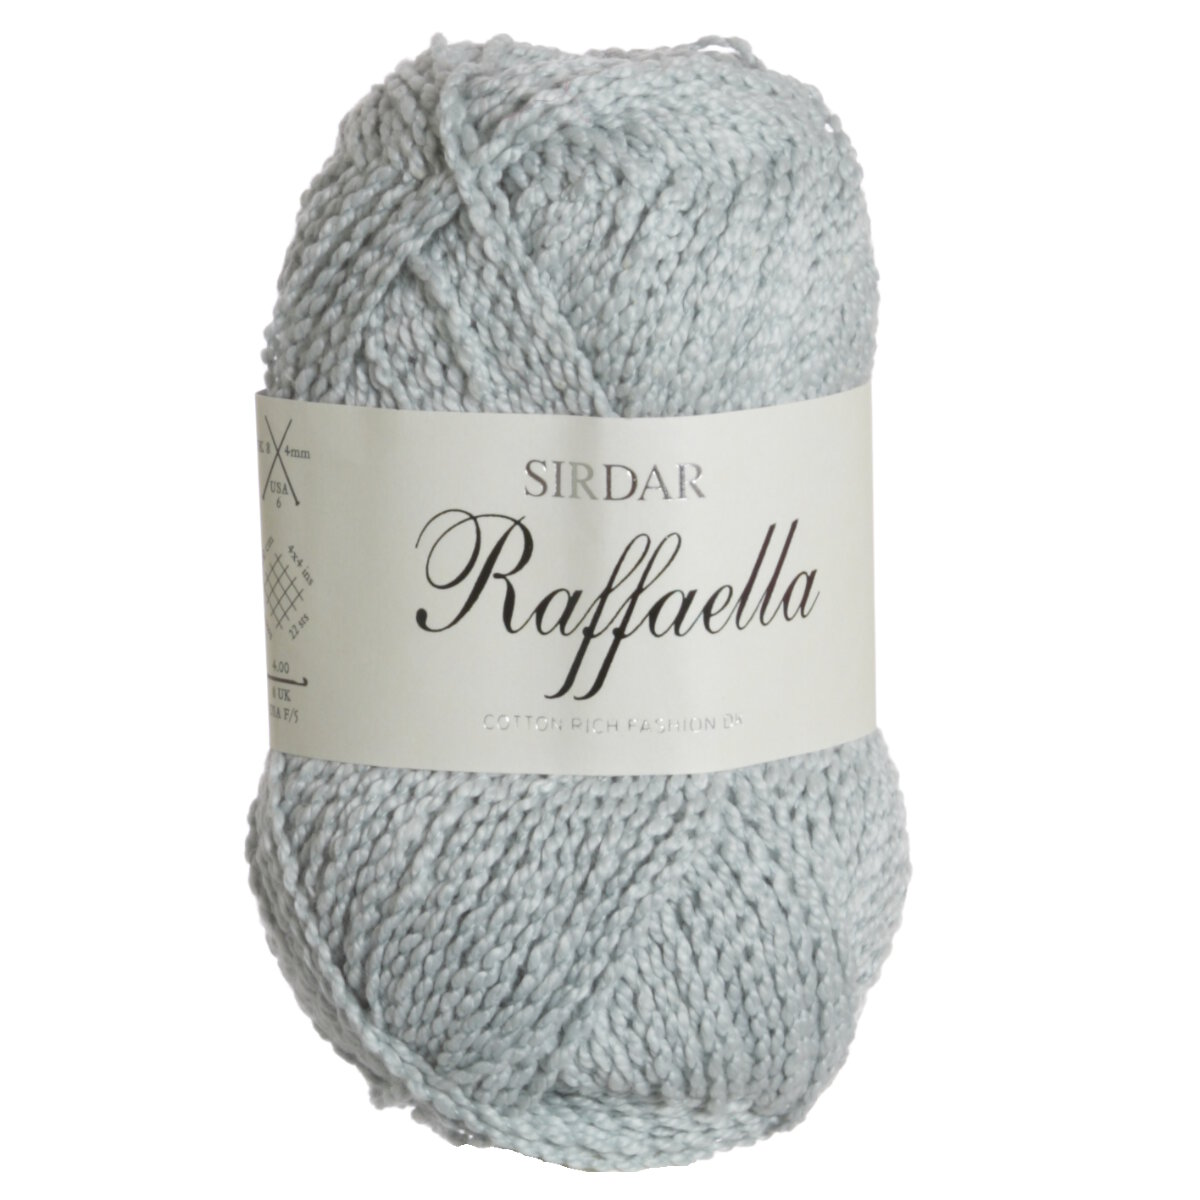 Sirdar Raffaella Yarn Reviews at Jimmy Beans Wool